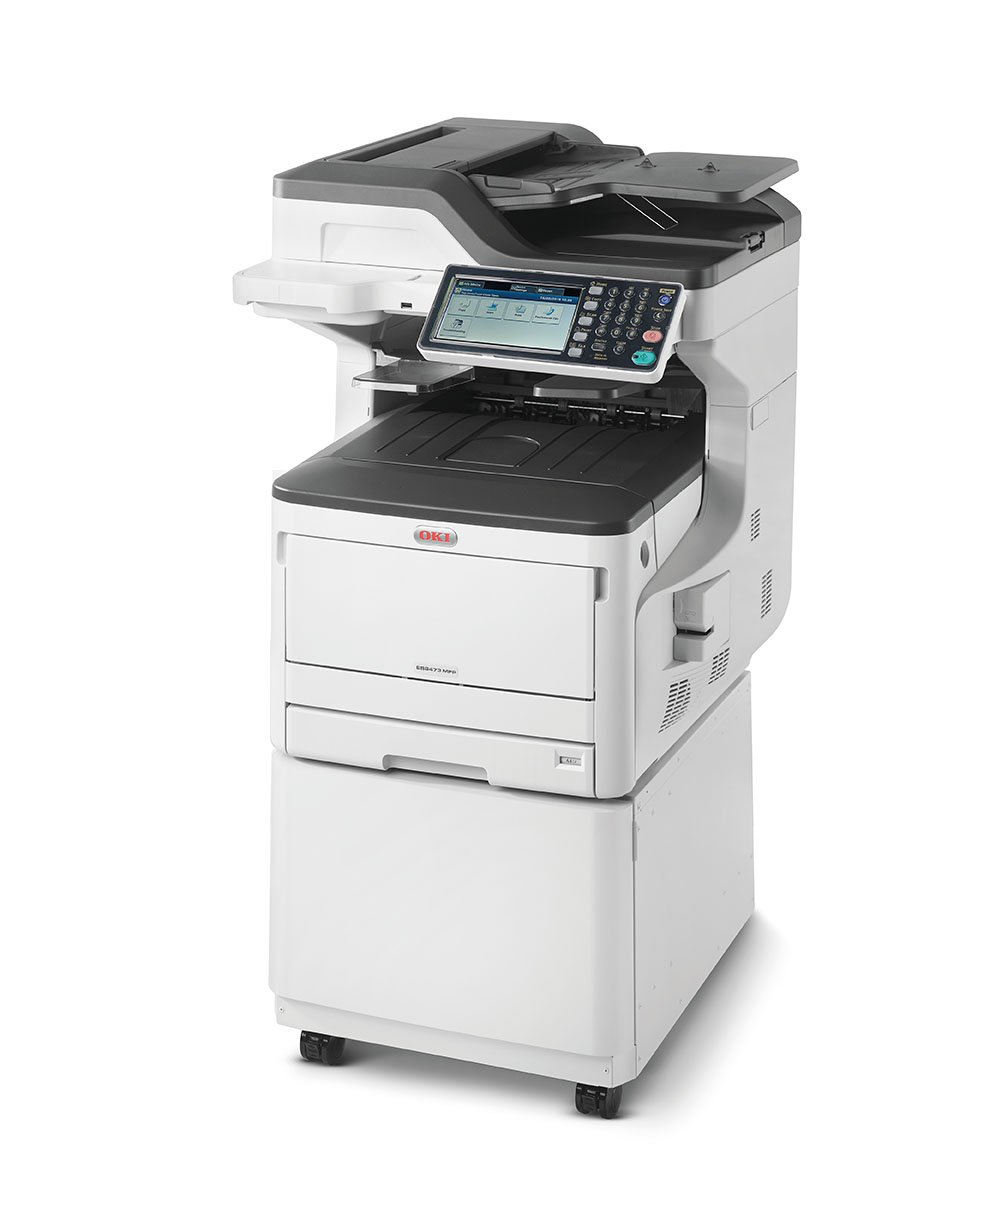 https://0201.nccdn.net/1_2/000/000/14a/80a/ES8473MFP_34_with_Cabinet.jpg